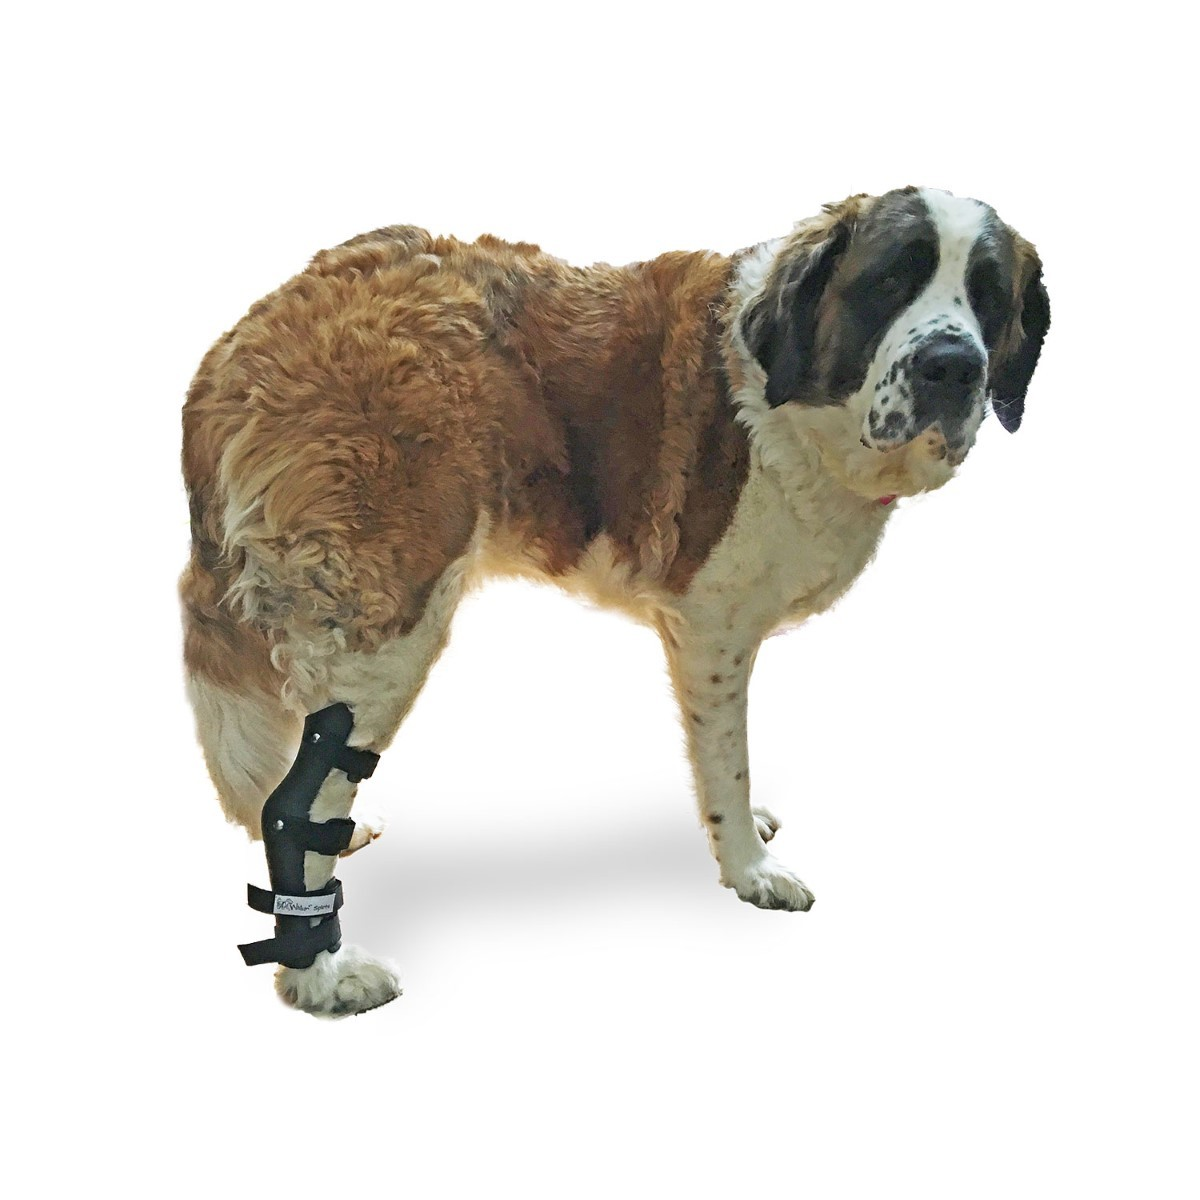 Primary image for Pet Splint for Dogs | Hock Style Foot Splint For Dogs with Arthritis and Injurie